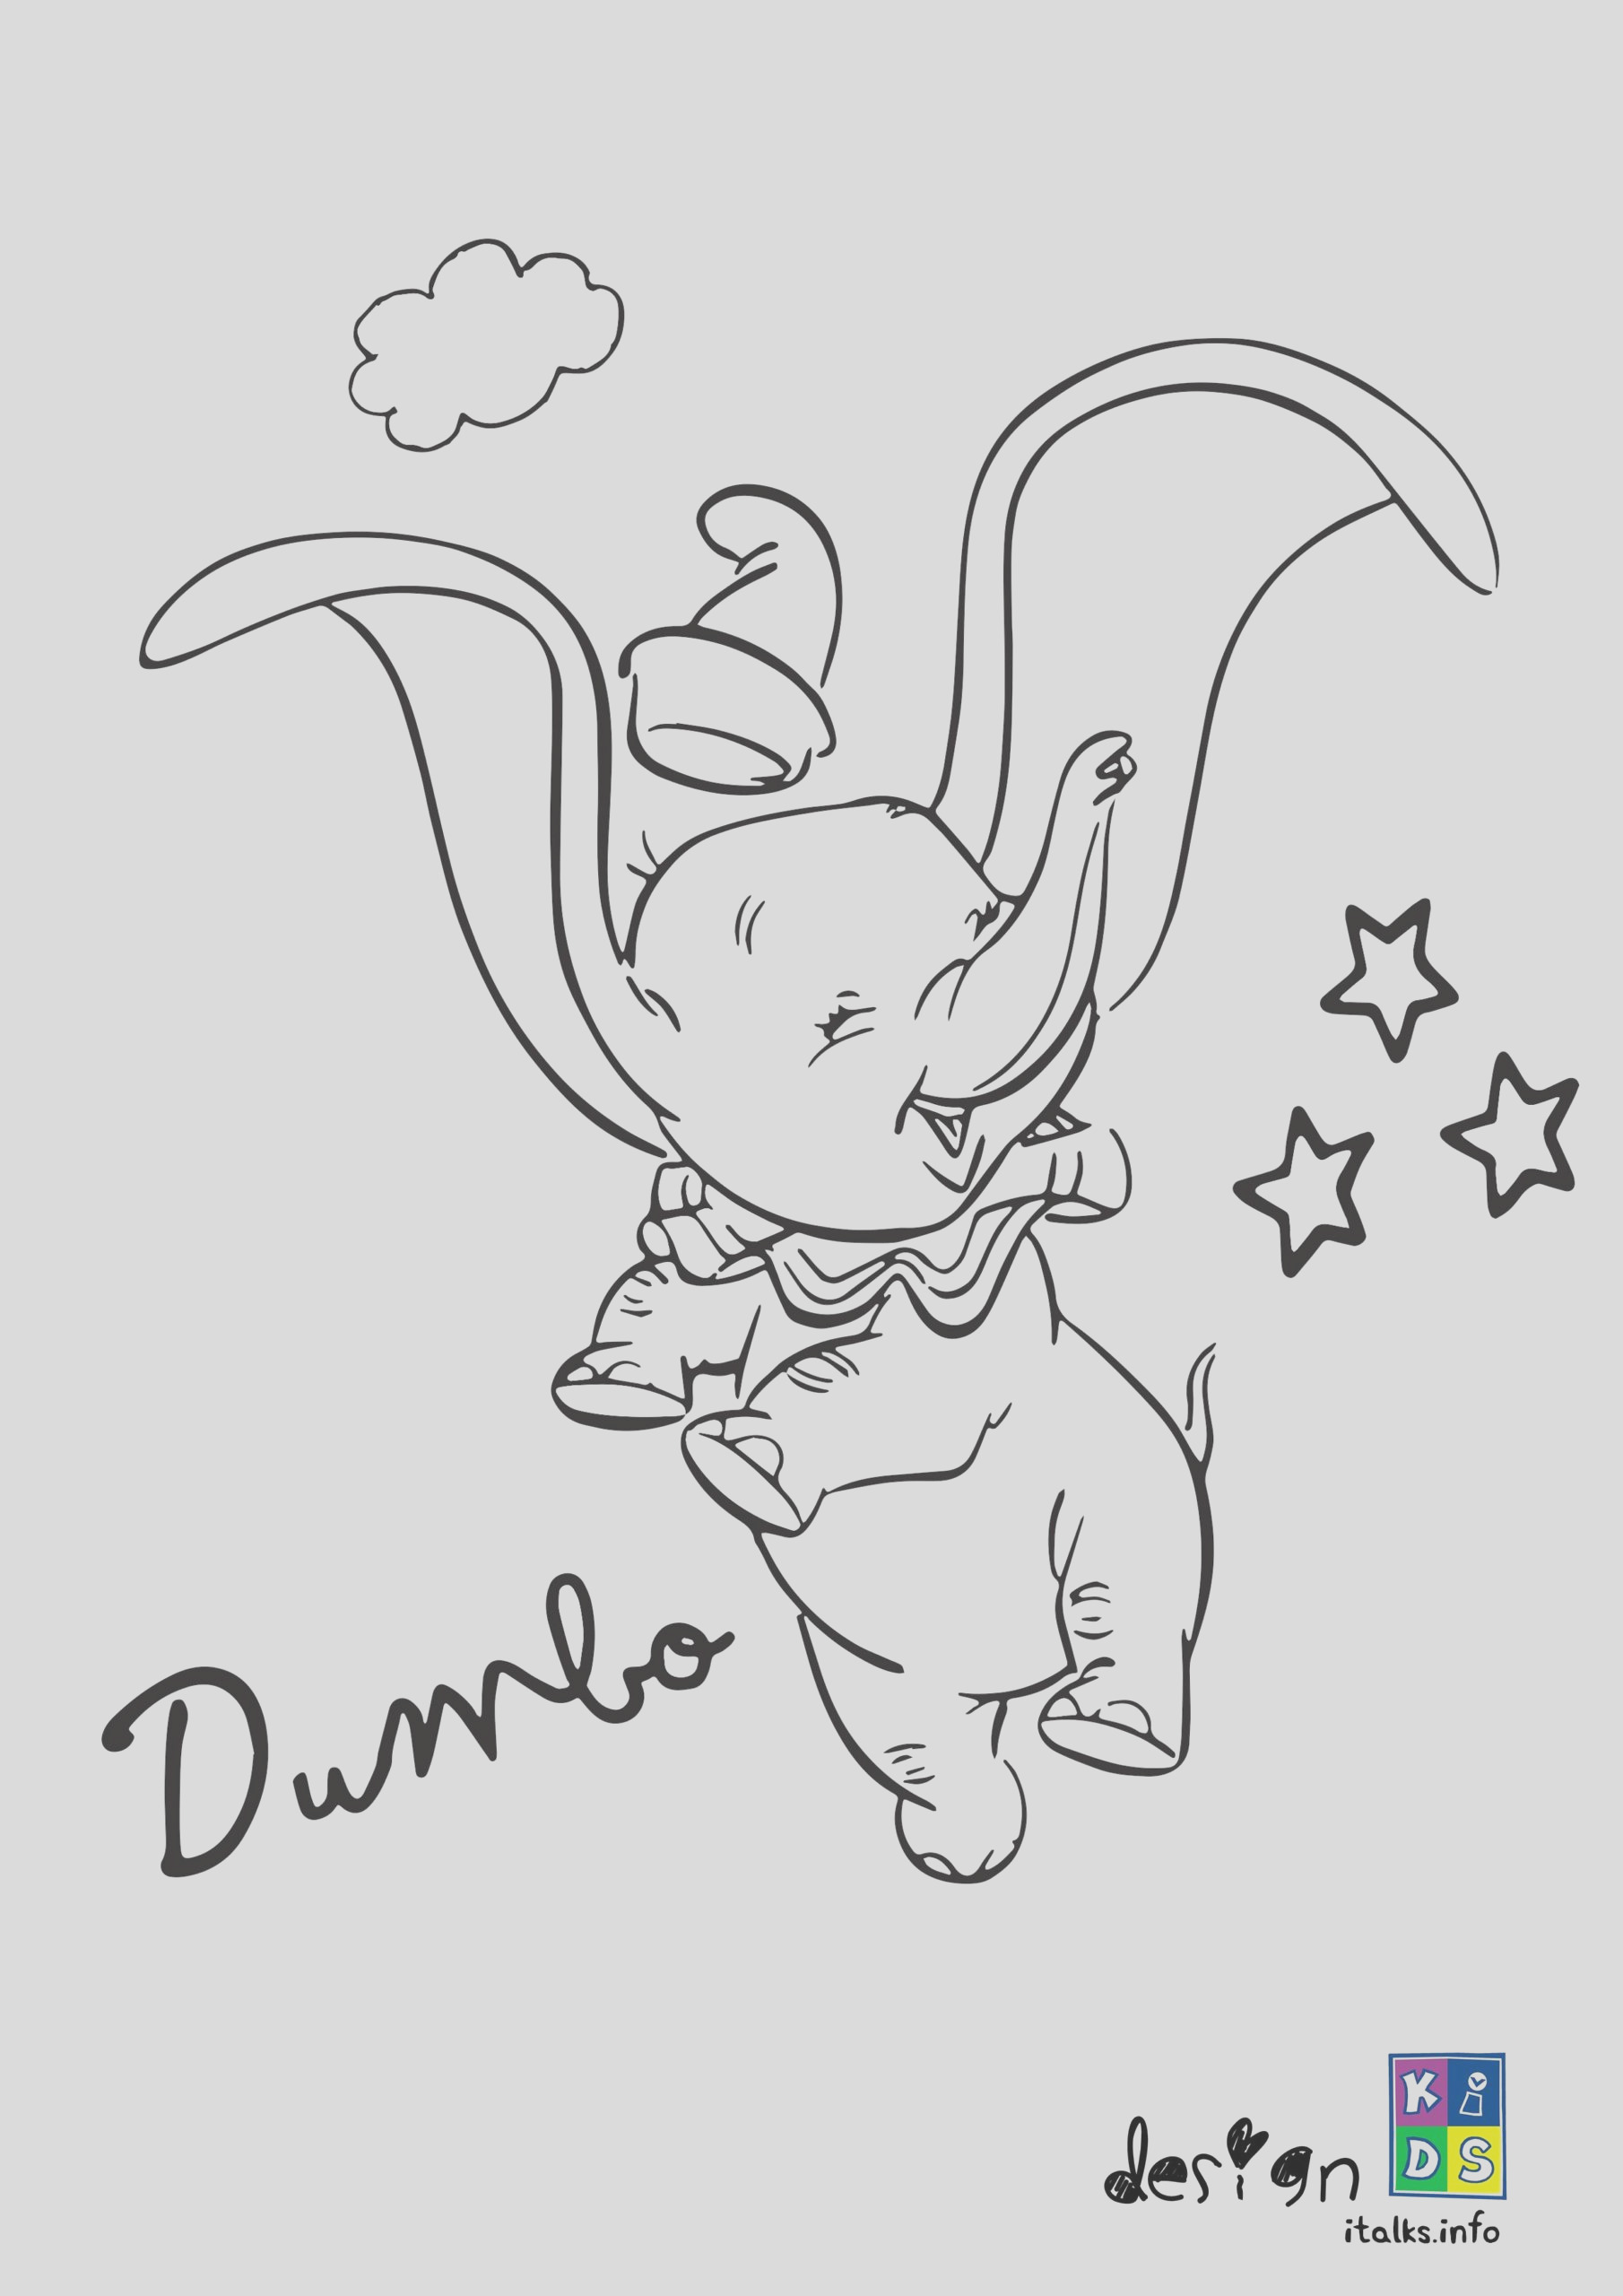 disney dumbo coloring page for kids